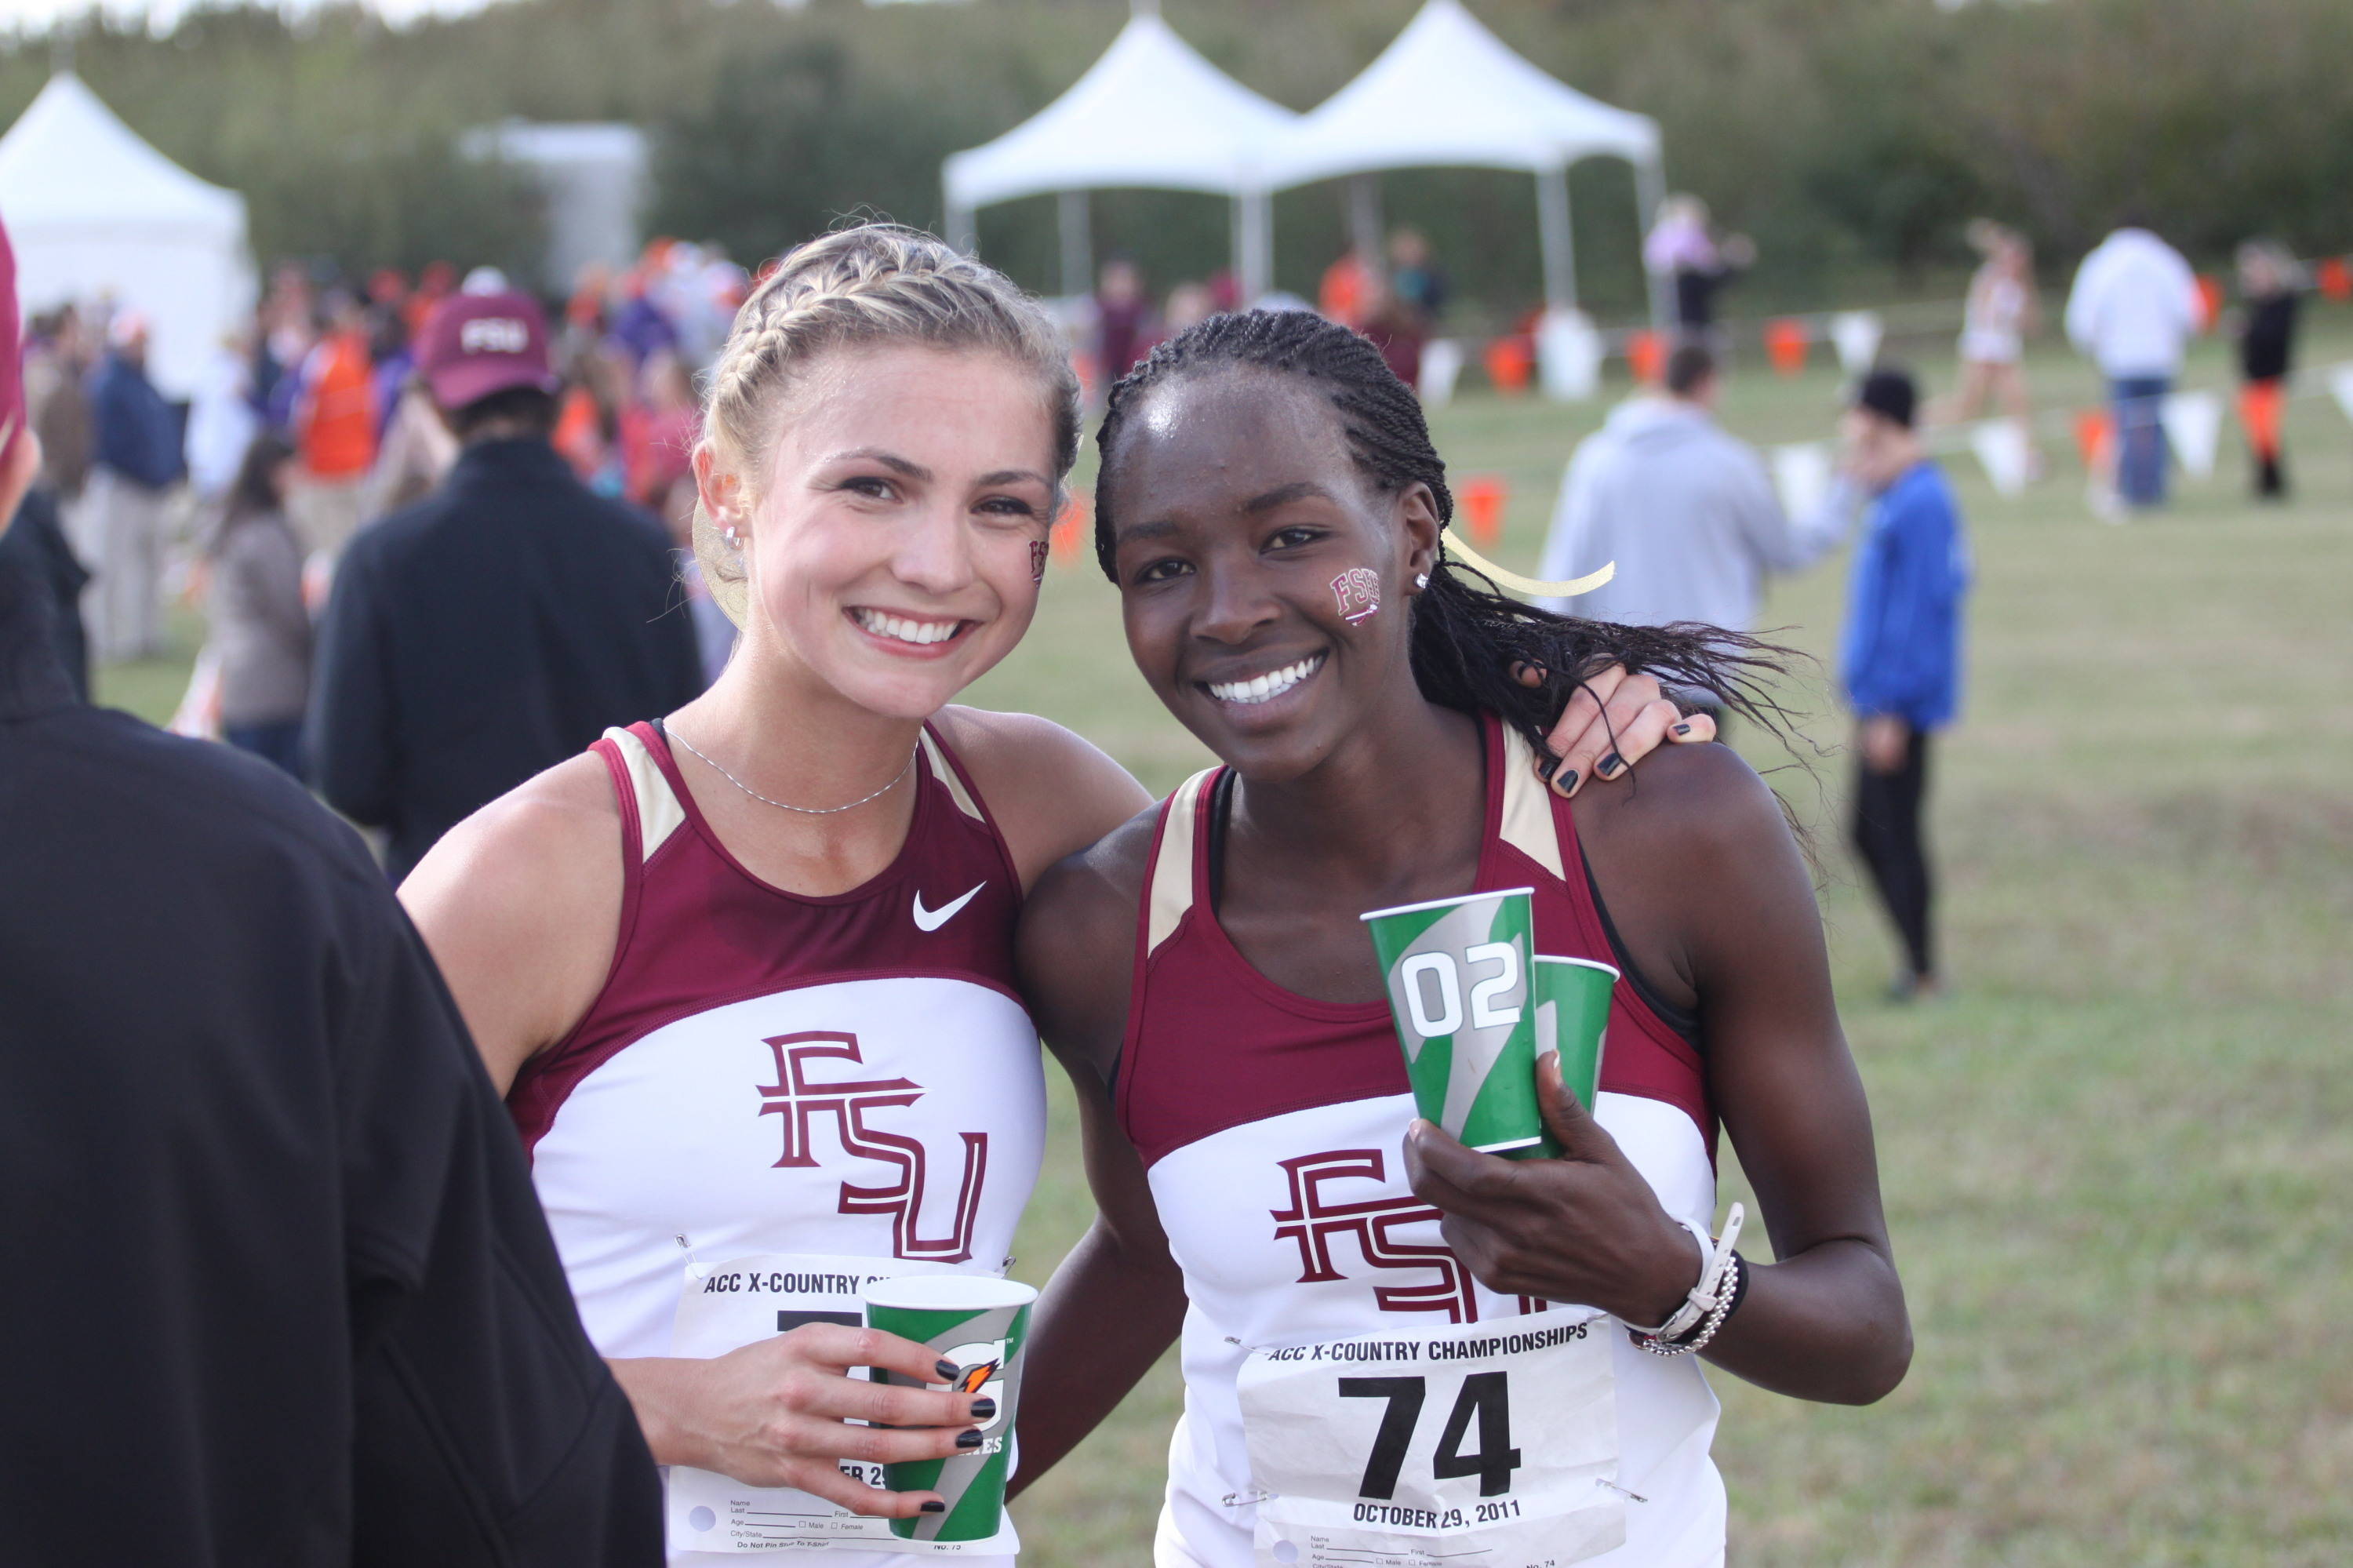 Jessica Parry and Violah Lagat flash big smiles after FSU's fourth consecutive ACC XC title in 2011